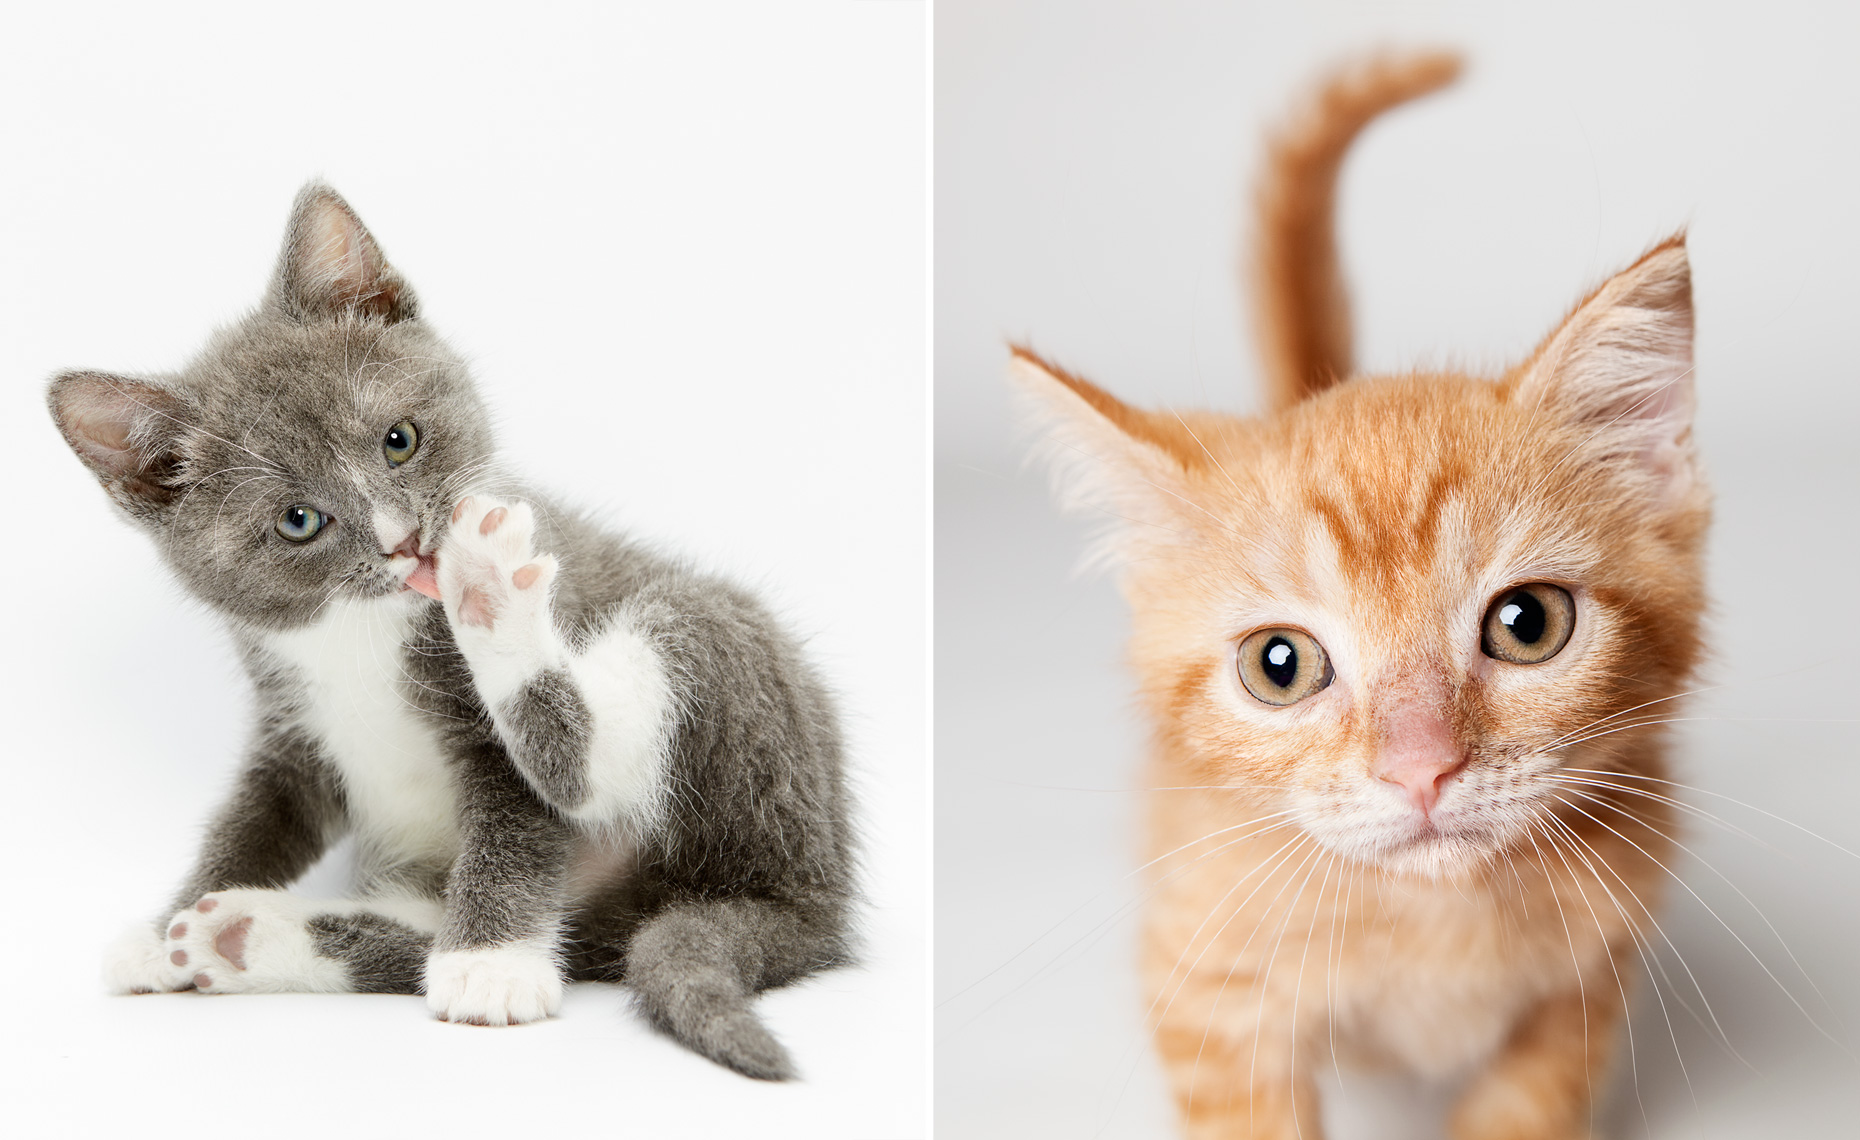 Gray grooming kitten and orange kitten